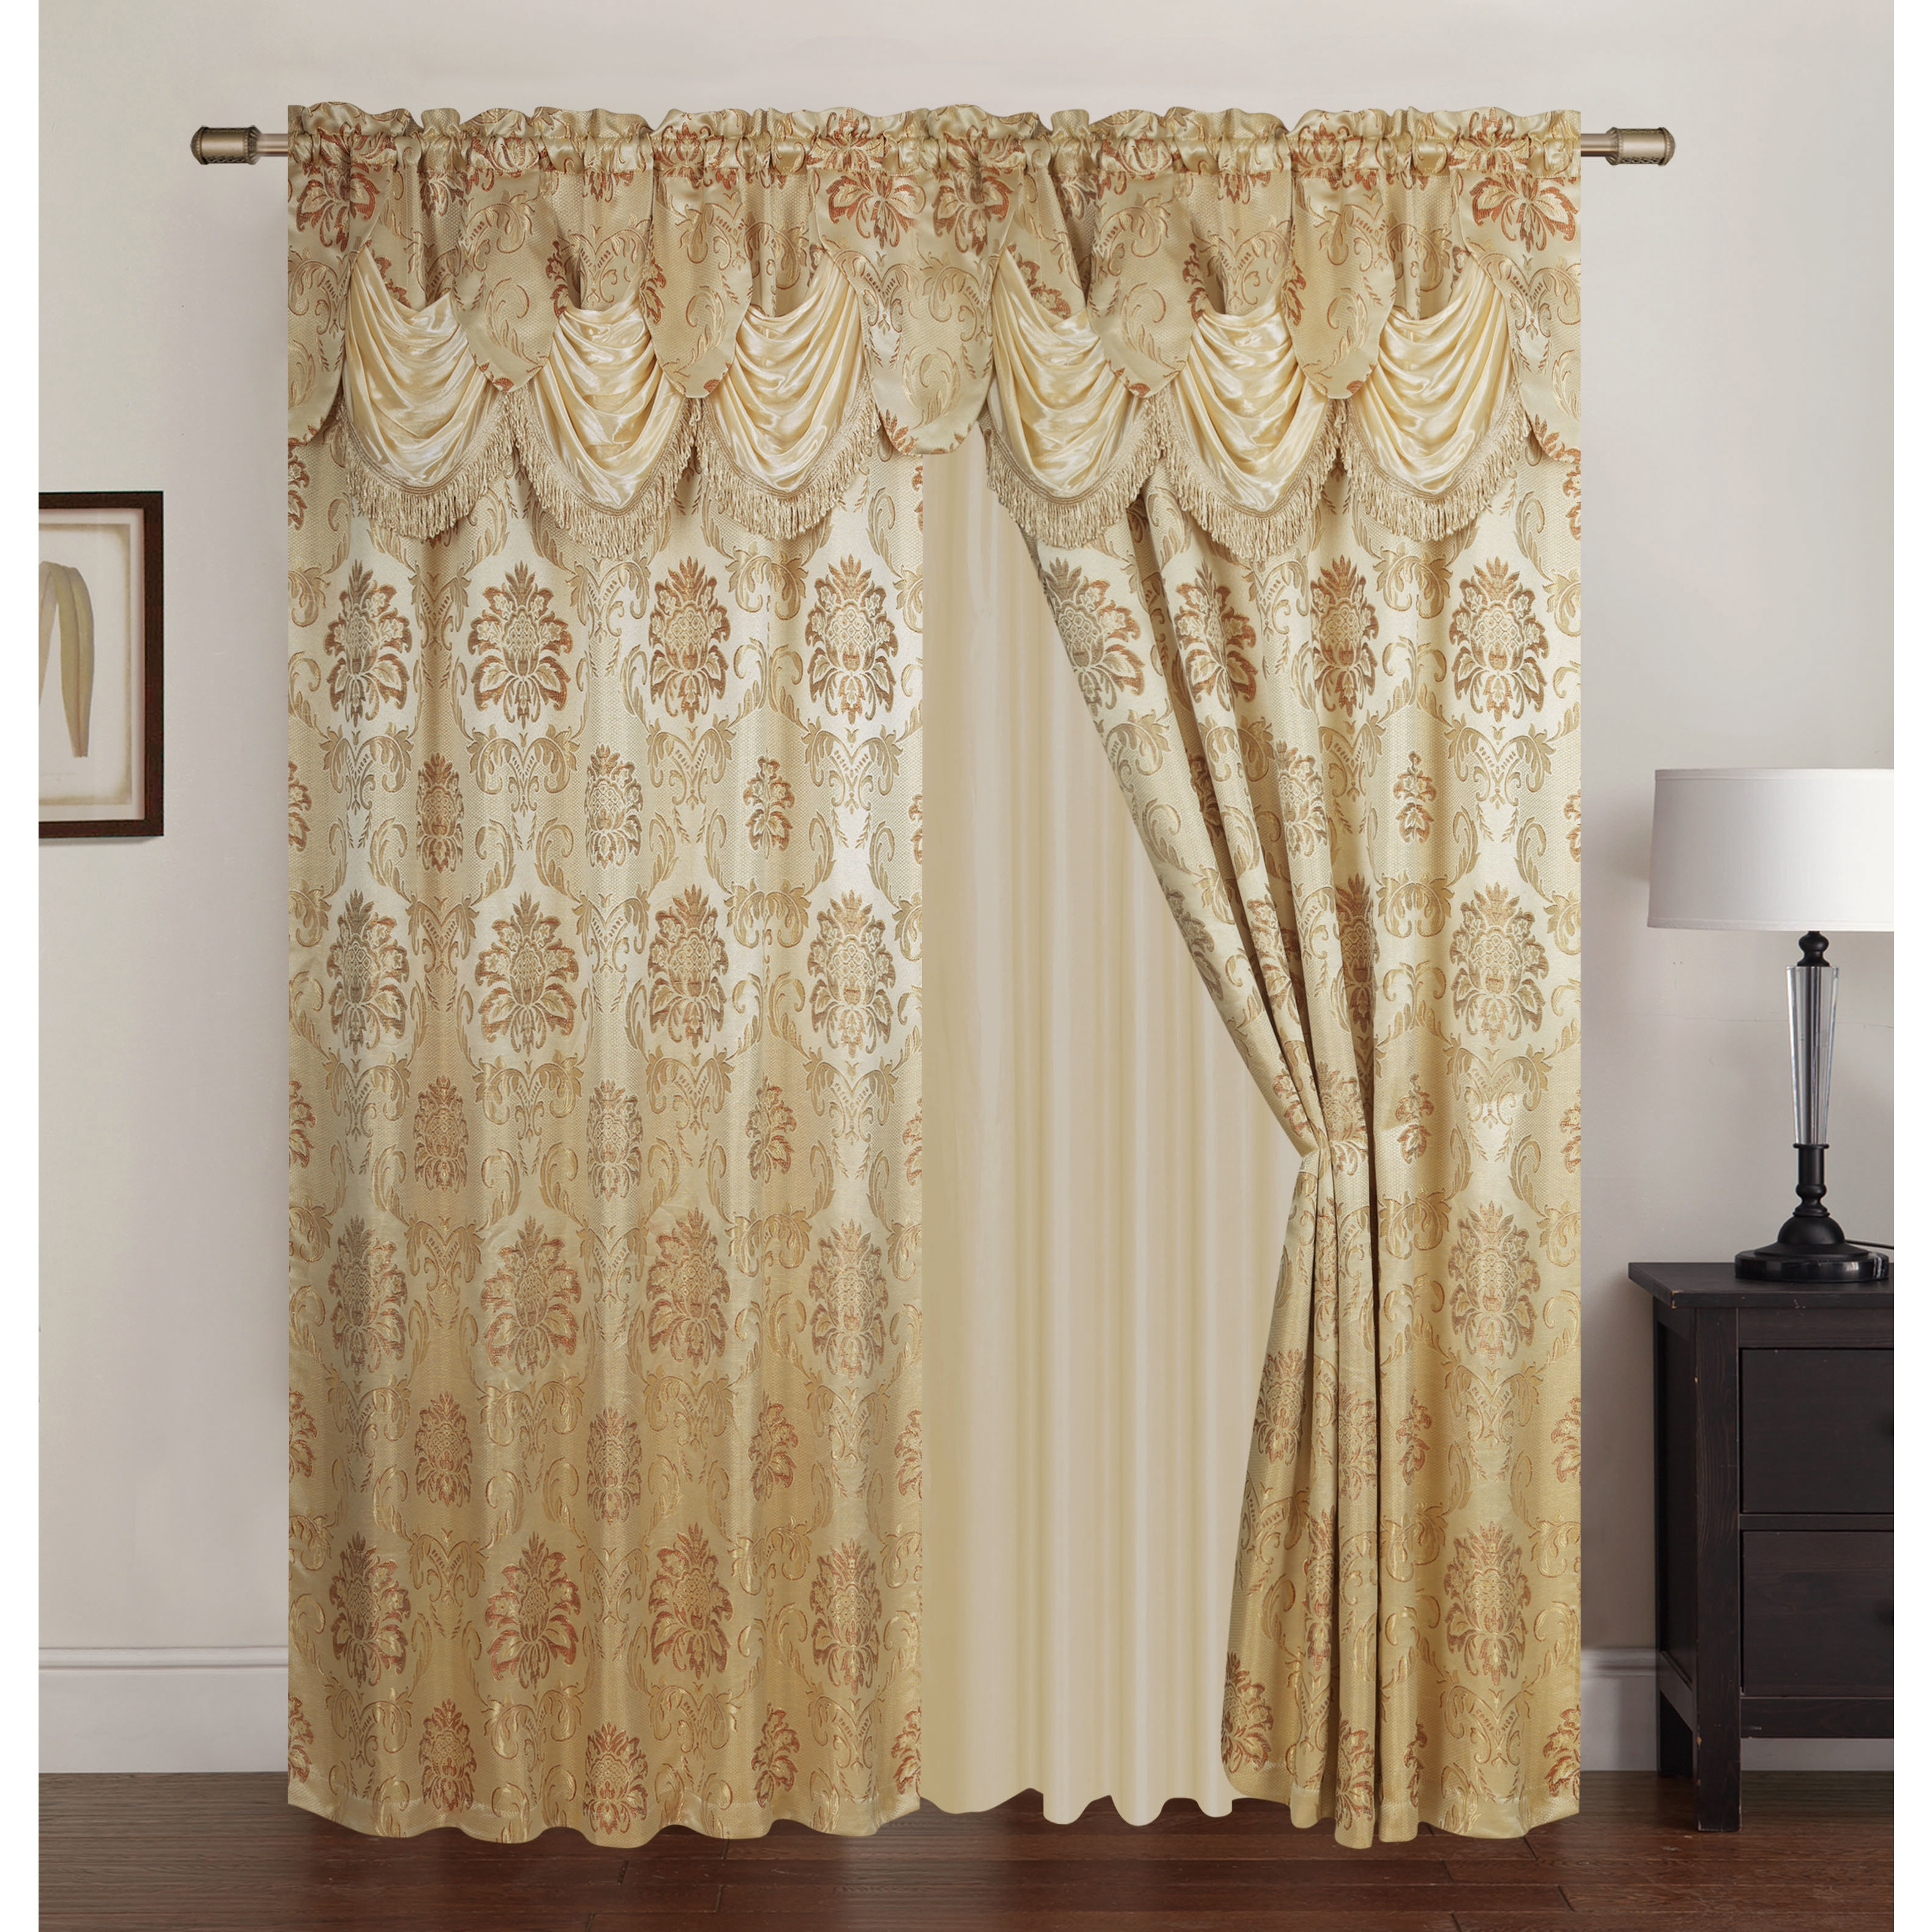 home lined curtains jardin panel free product curtain thermal x on inch rod orders over shipping garden overstock